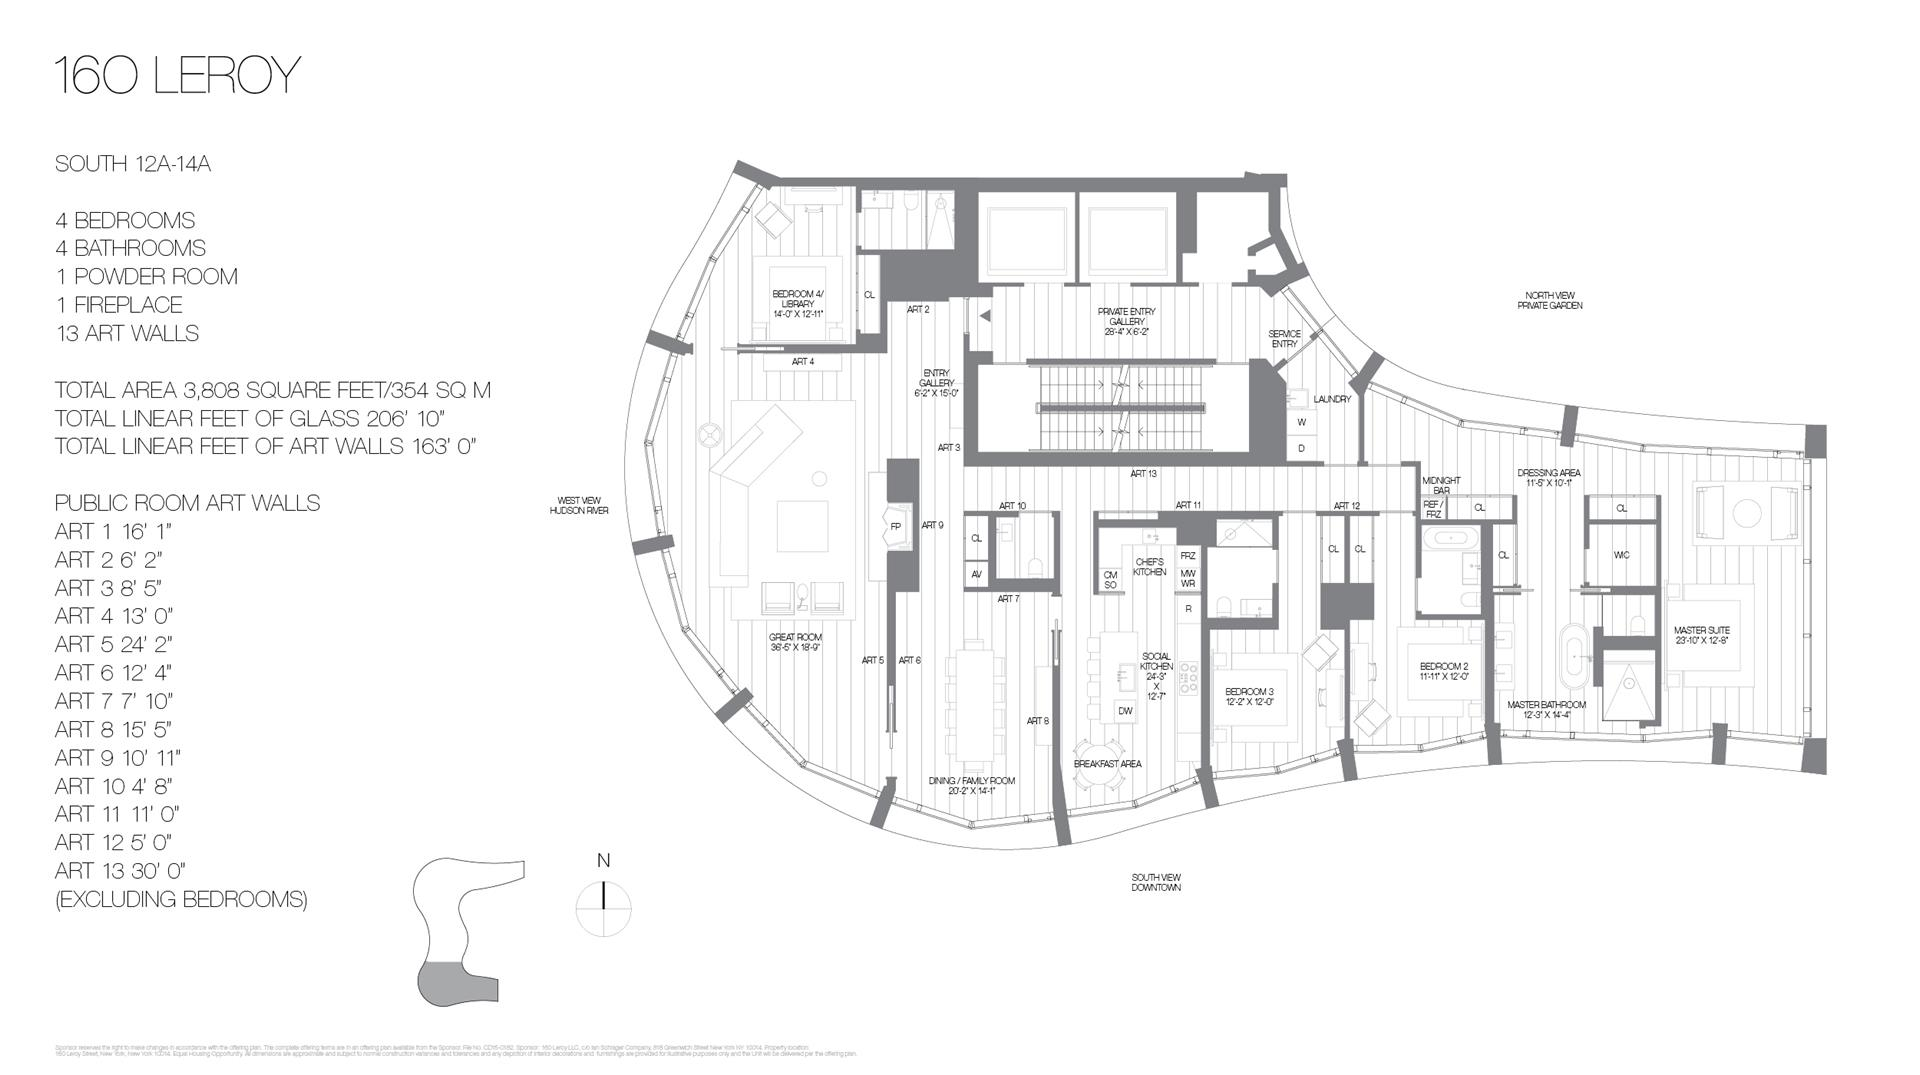 Floor plan of 160 Leroy St, SOUTH12A - West Village - Meatpacking District, New York